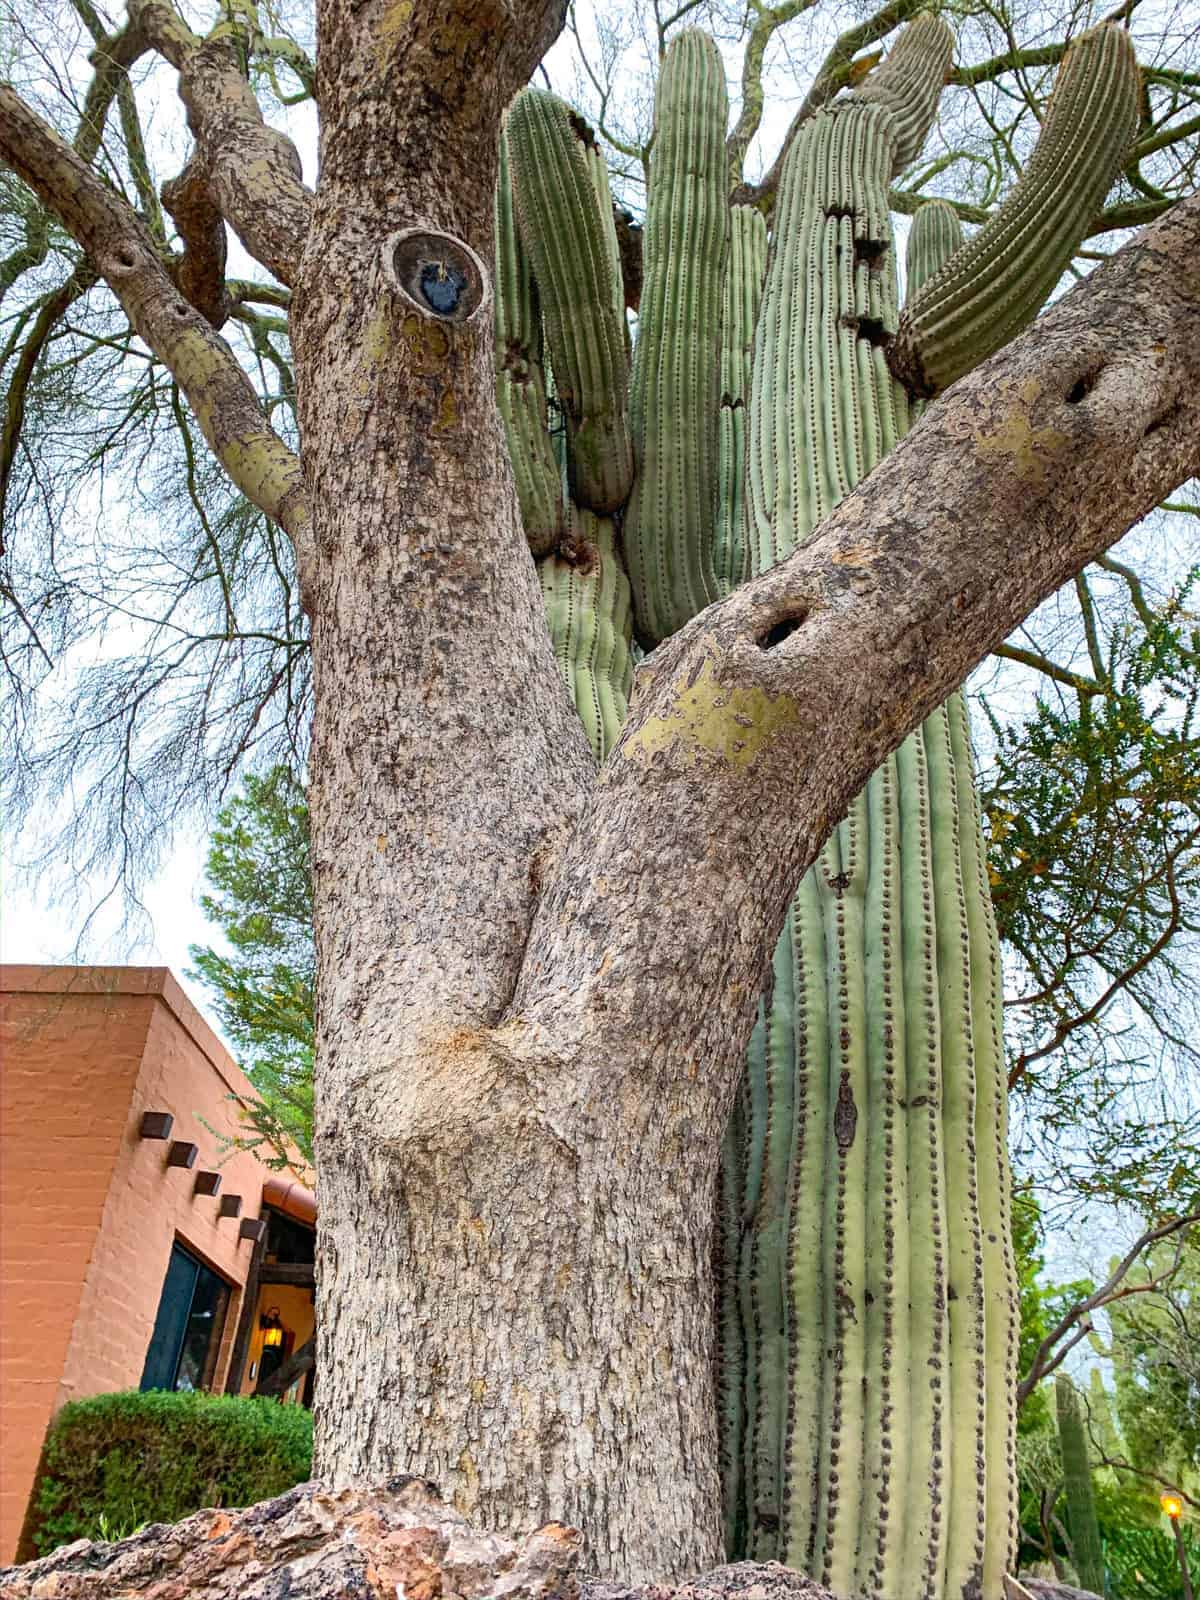 White Stallion Ranch, the Best All-Inclusive Resort in Arizona showing the scenery located around the ranch, which included cacti and trees.